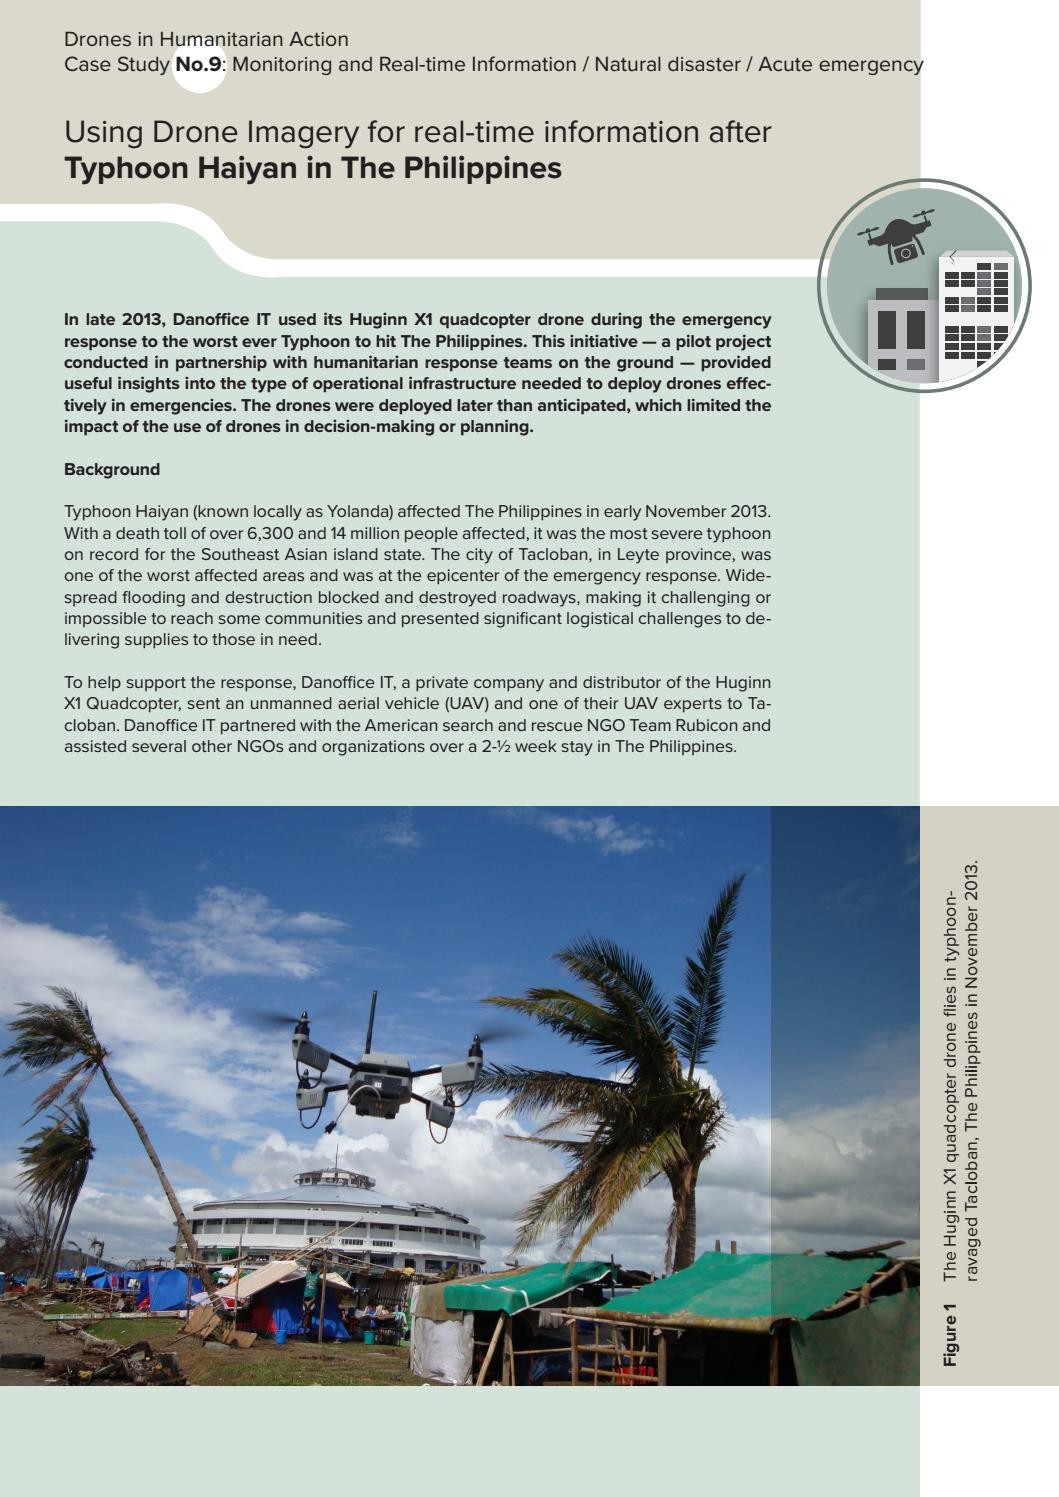 Drones in Humanitarian Action, Case Study 9: the Philippines